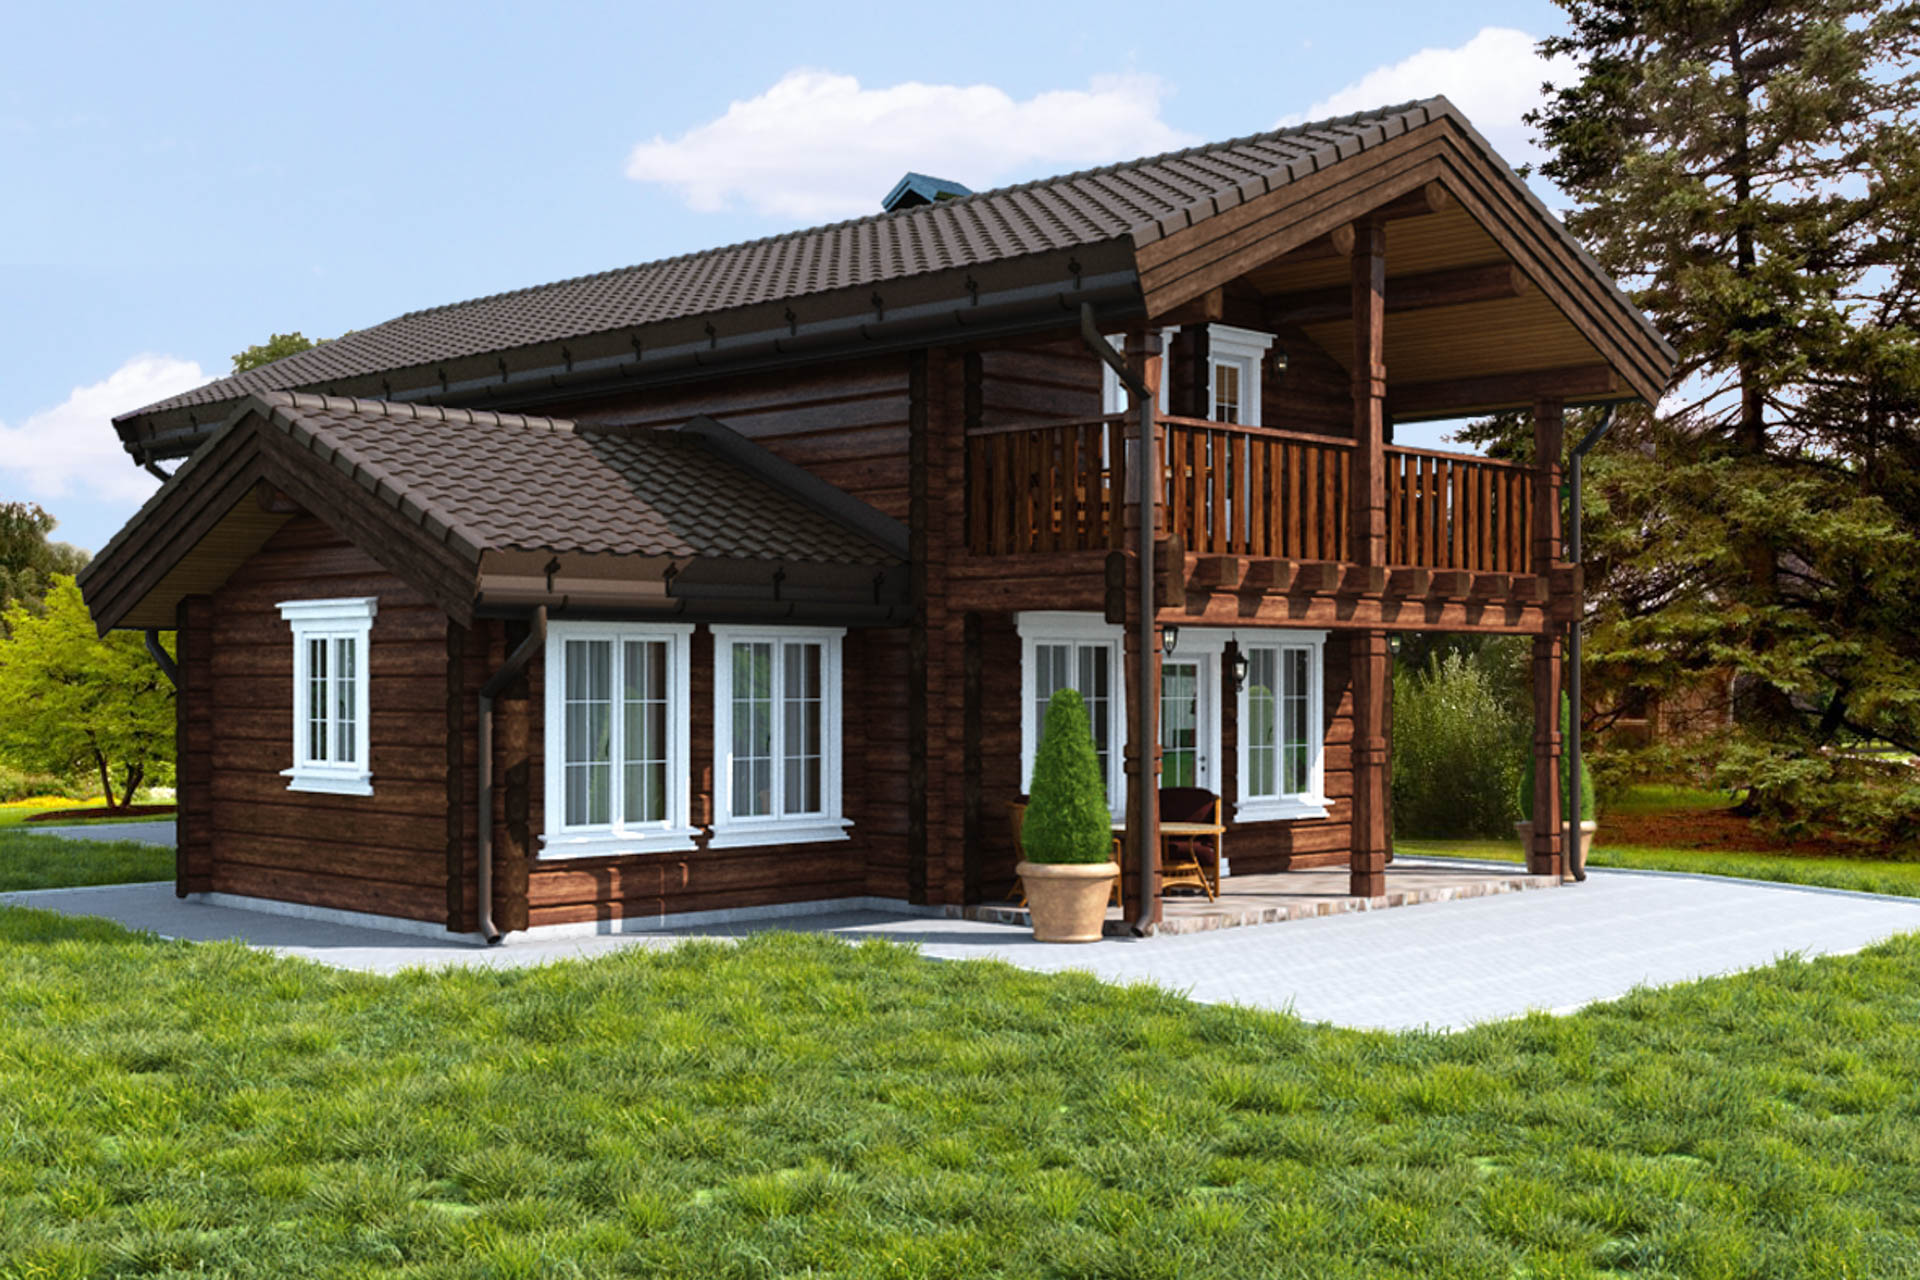 House of timber 8 by 8 - construction features, layout and reviews 2